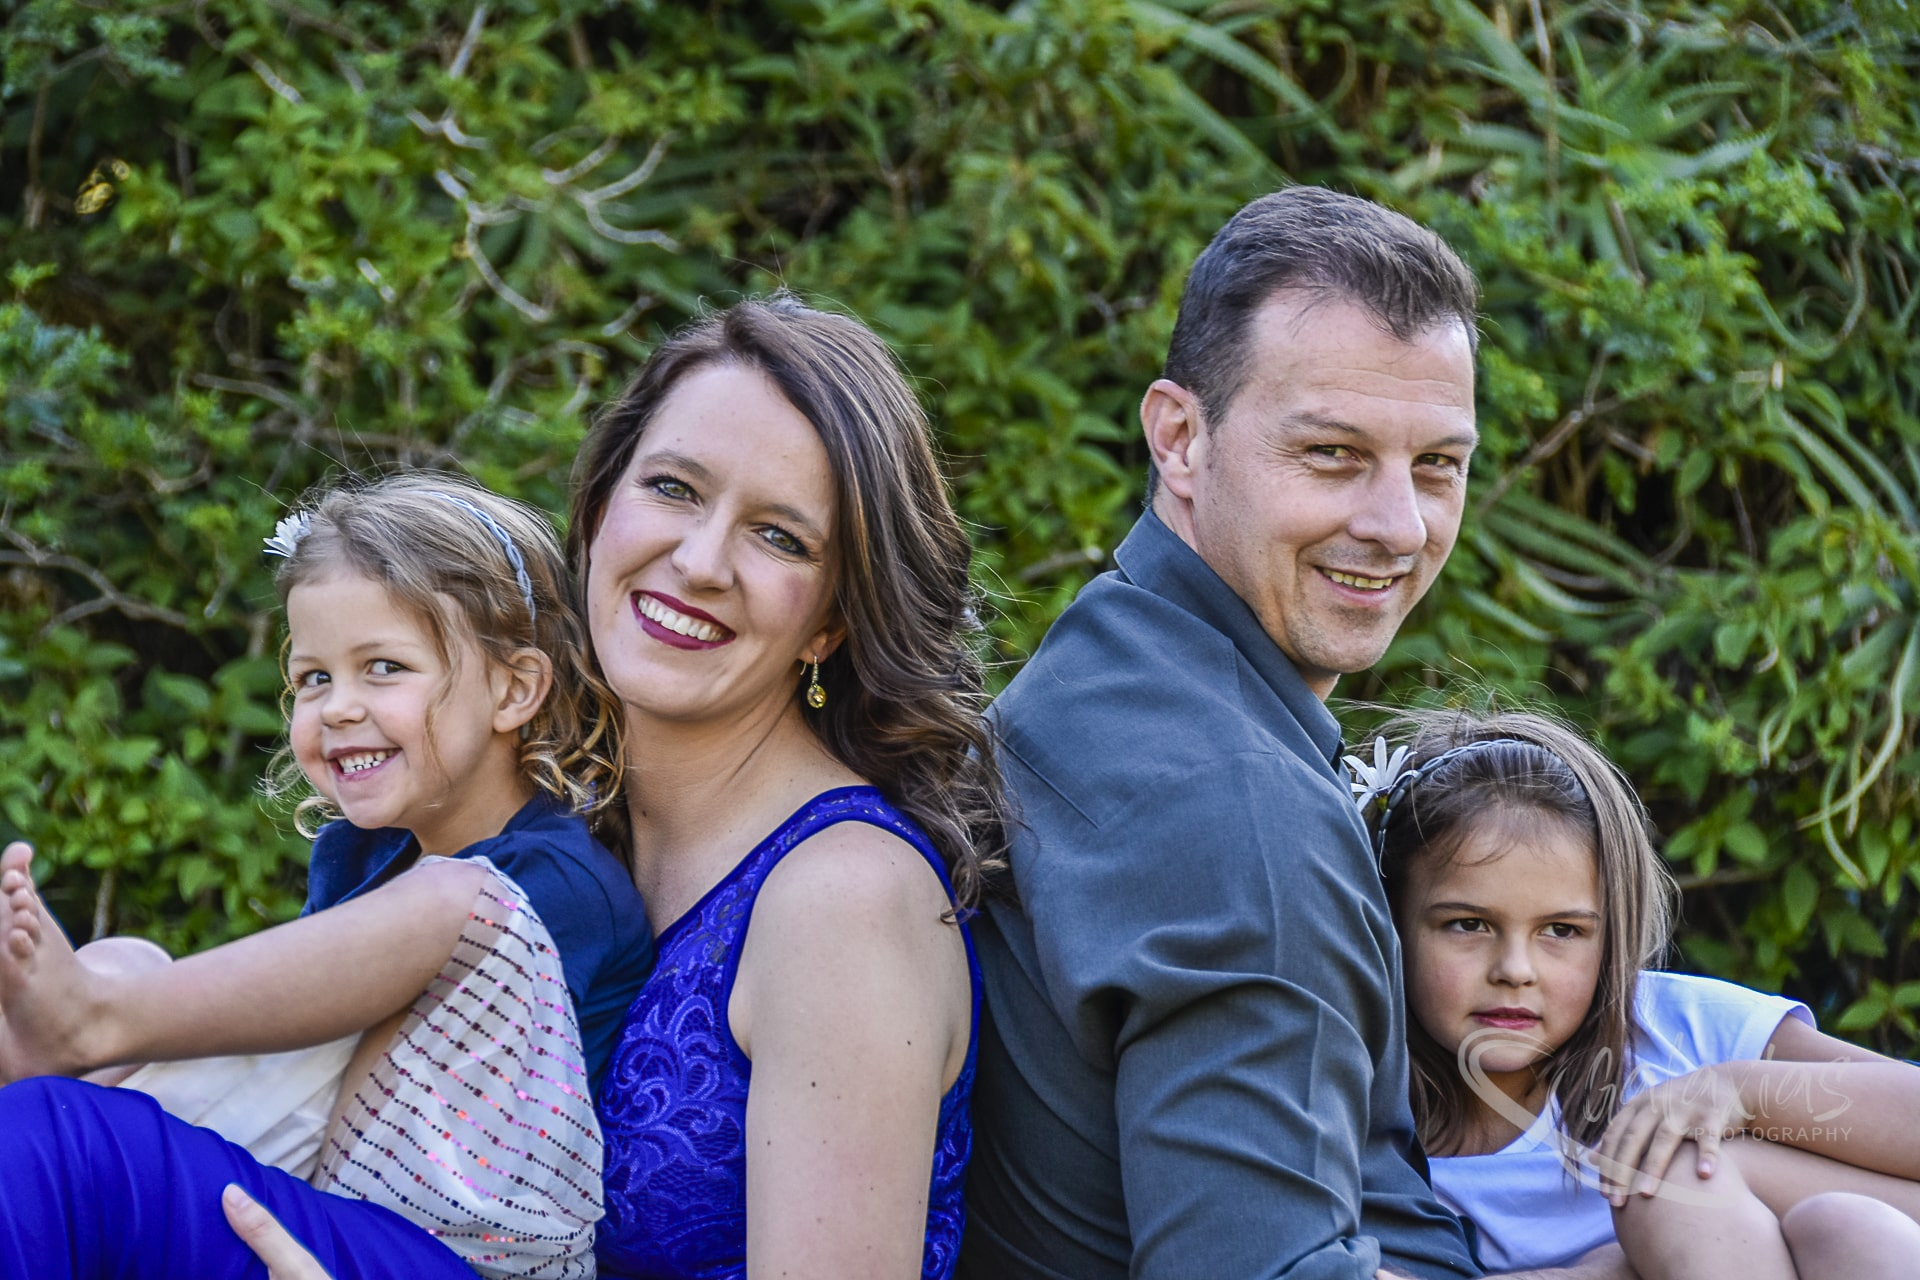 Stokes family photo shoot at Jan Cilliers Park